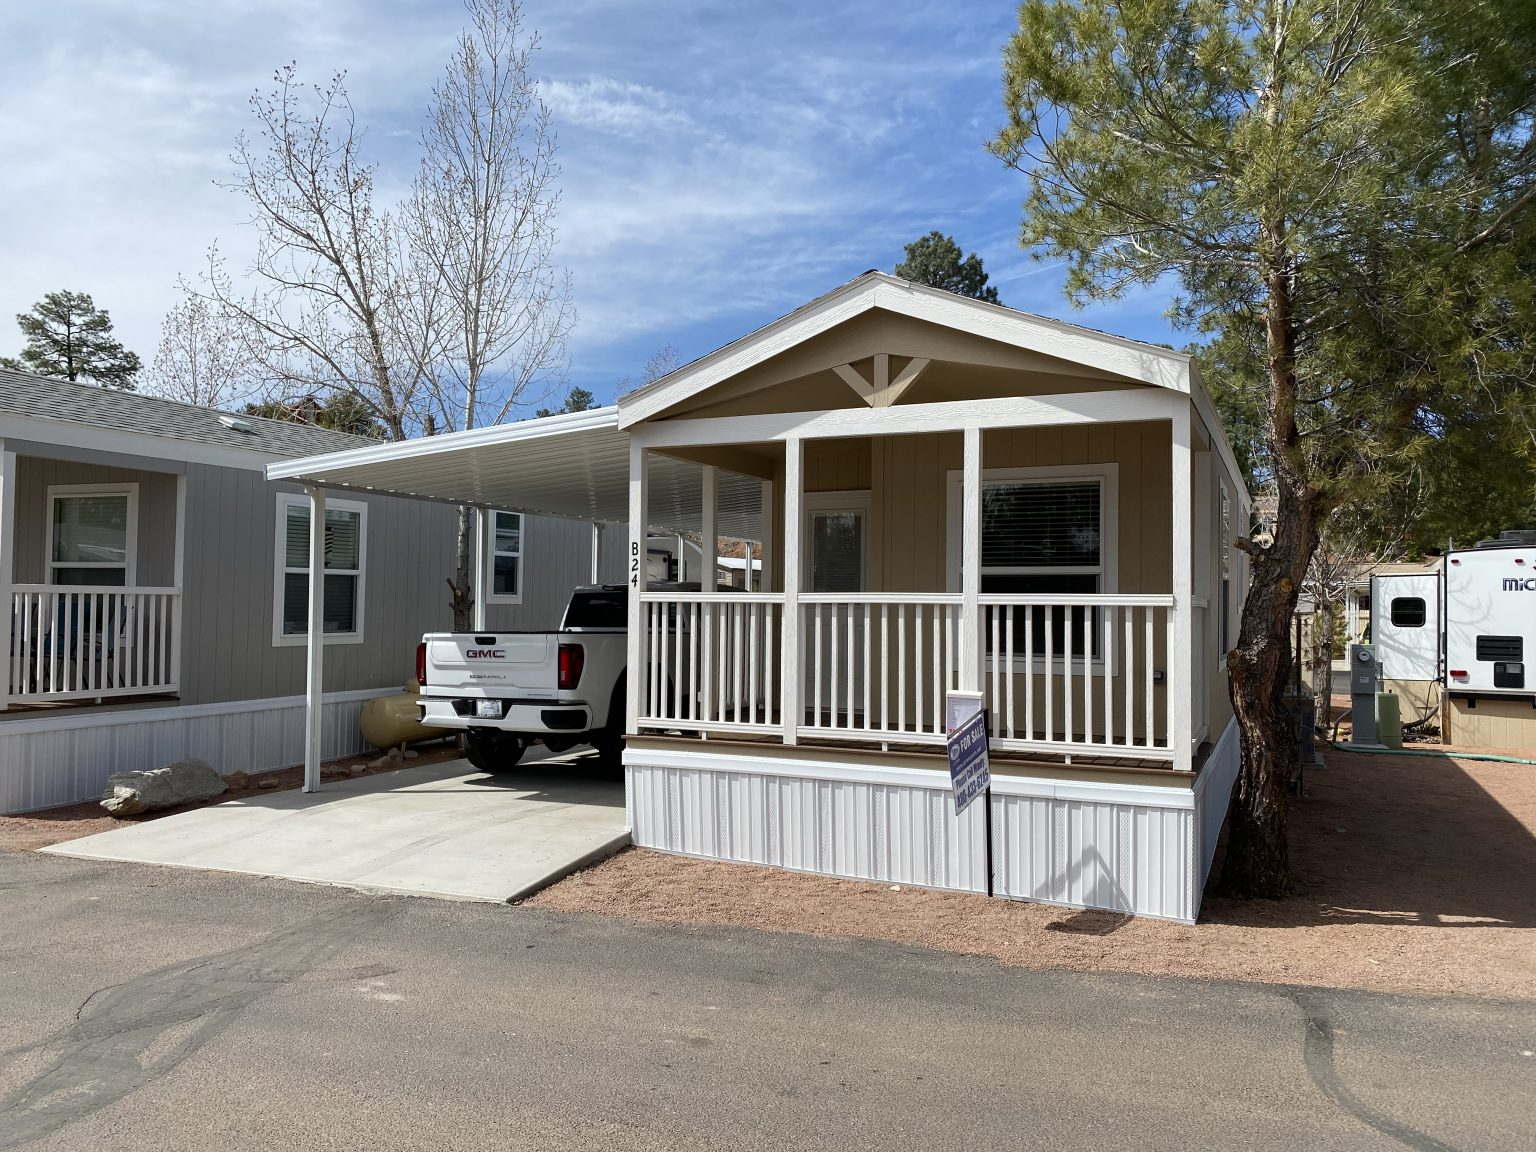 Home for Sale in Star Valley, AZ AZ - Pineview B-24 ...